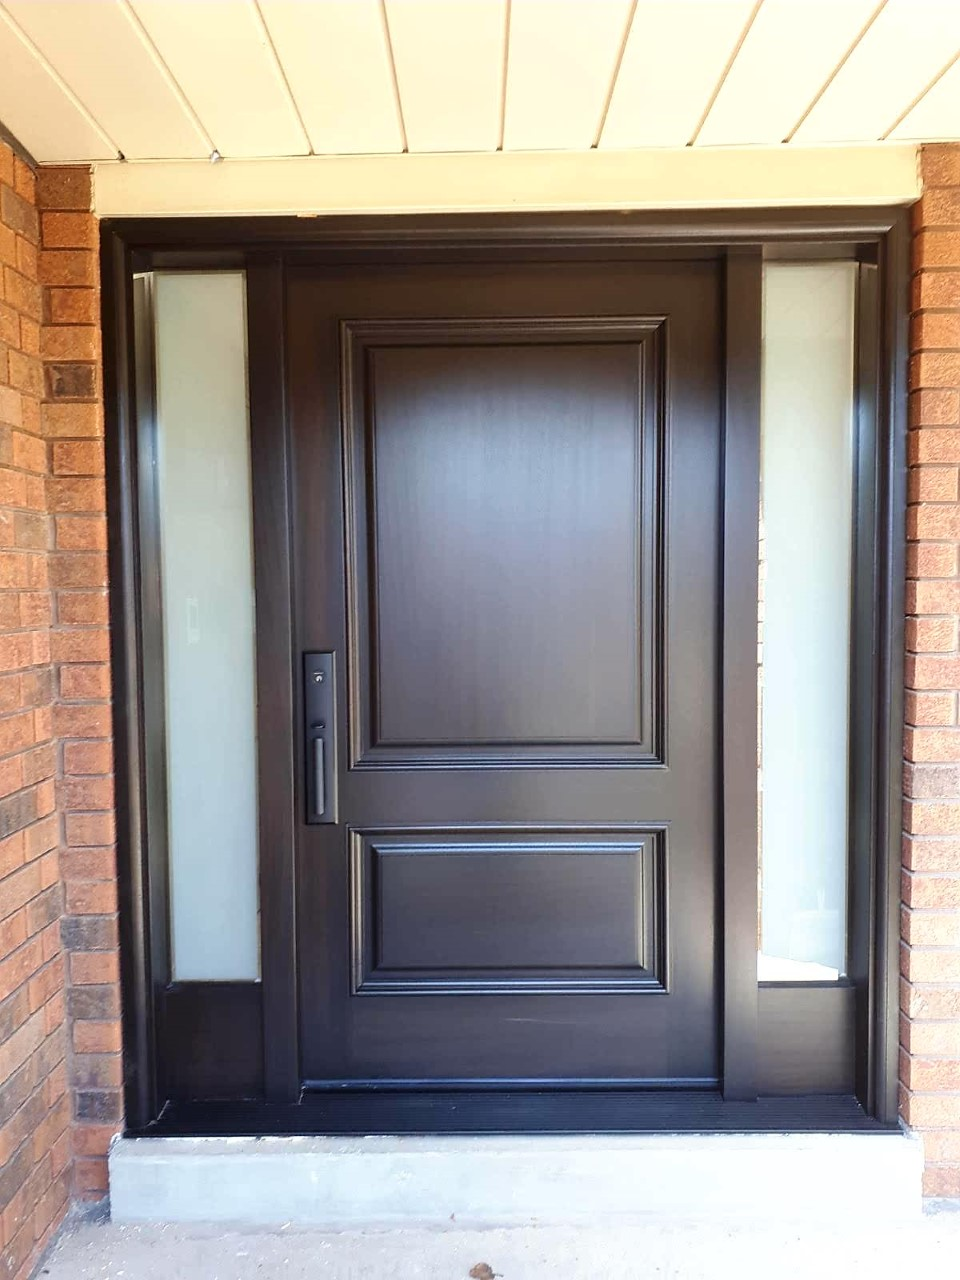 """Success is the sum of small effords repeated day in and day out"" #SolidWood, #Doors, #Wood #Mahogany, #CustomMadeDoors, #EntryDoors.#DistinctiveLo­ok, #FityourHome Made by #NorthwoodDoorsInc. Your best value and quality, #HandCraftedDoors. Every door #Manifactured by us has our corporate stamp - a testament to our dedication and passion in #Woodwork. Let #NorthwoodDoorsInc. add to your home's #CurbAppeal by enhancing the quality and beauty of your #EntryDoors. Visit our #Showroom to envision how one of our many #doors on display might look like at your #Home. Contact us today Tel. 416-253-2034, info@northwooddoors.com, www.northwooddoor.com — in Toronto, Ontario"